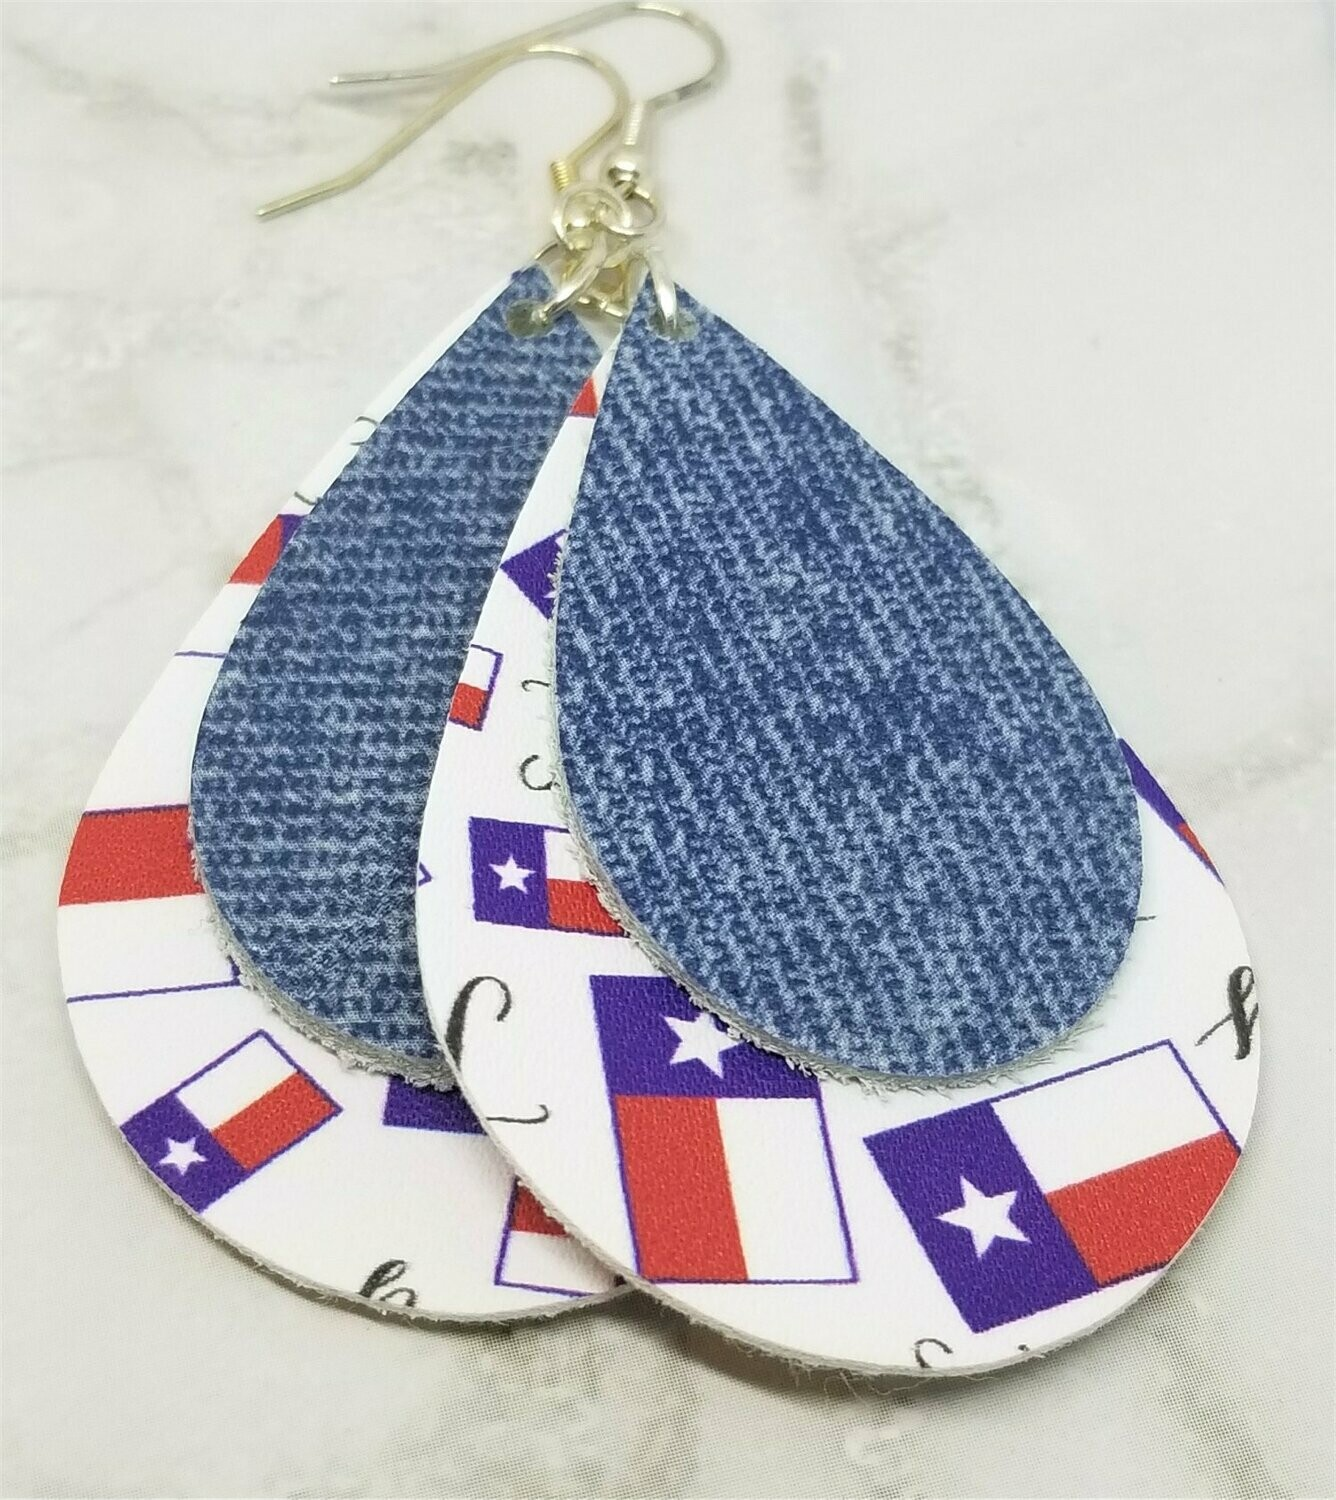 Texas Faux Leather Earrings with a Denim Finish Tear Drop Shaped Real Leather Overlay